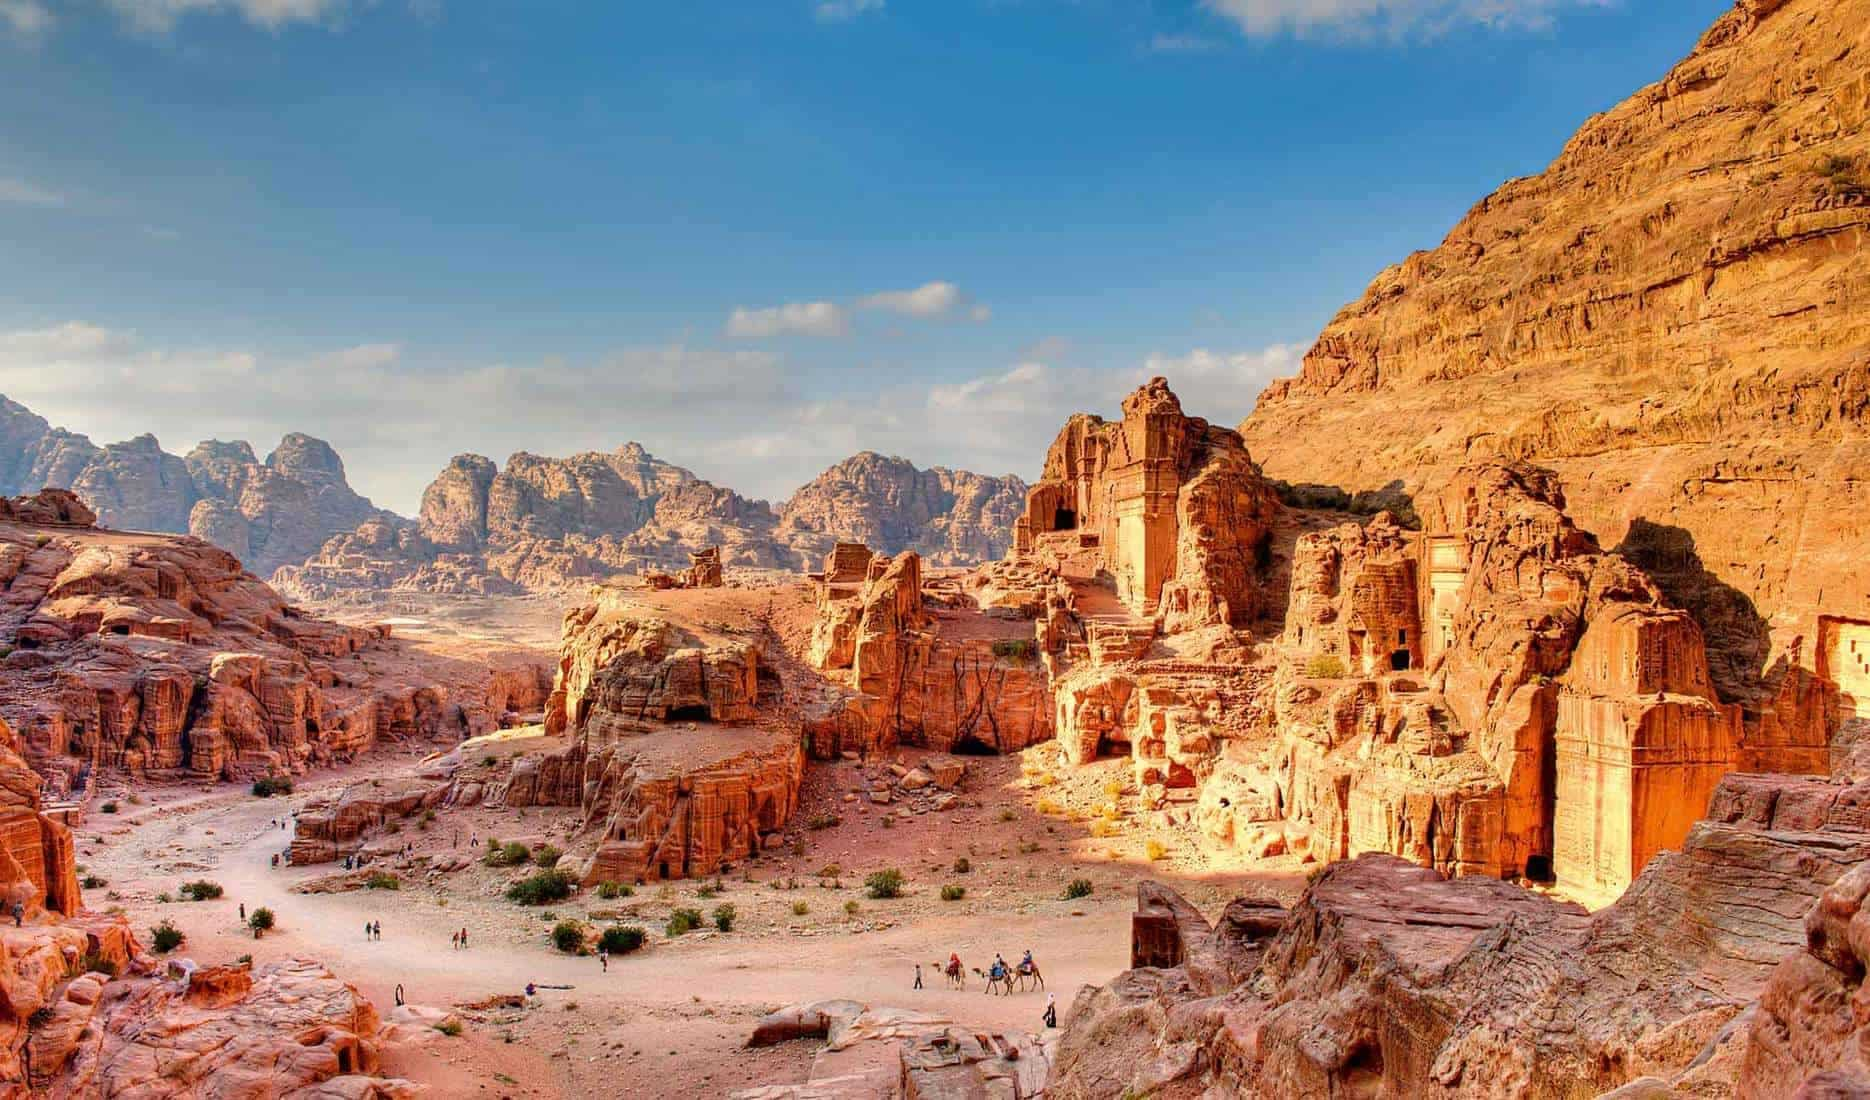 Jordan amazing beauty in the Middle East